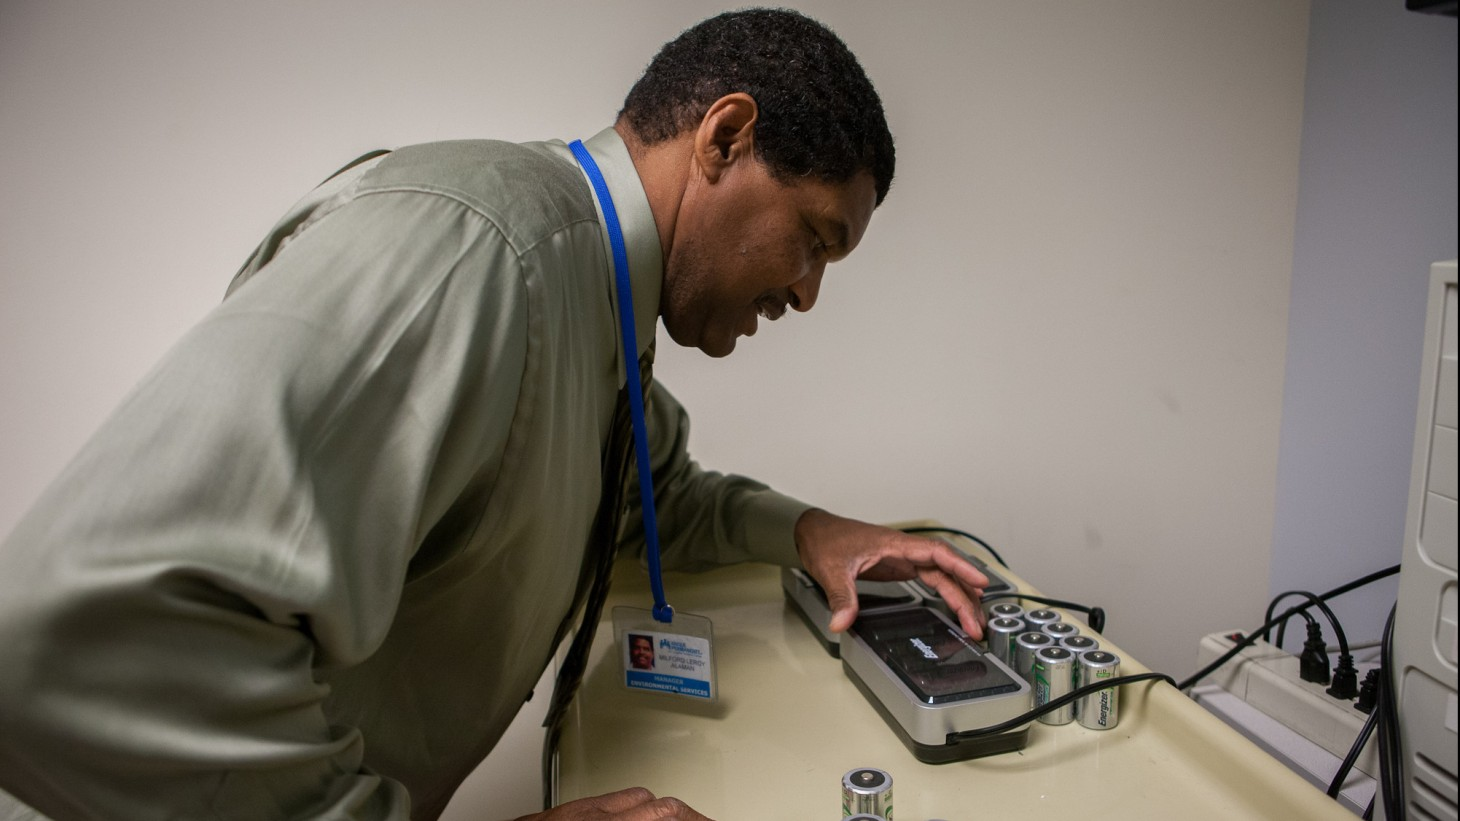 man with battery recycling device